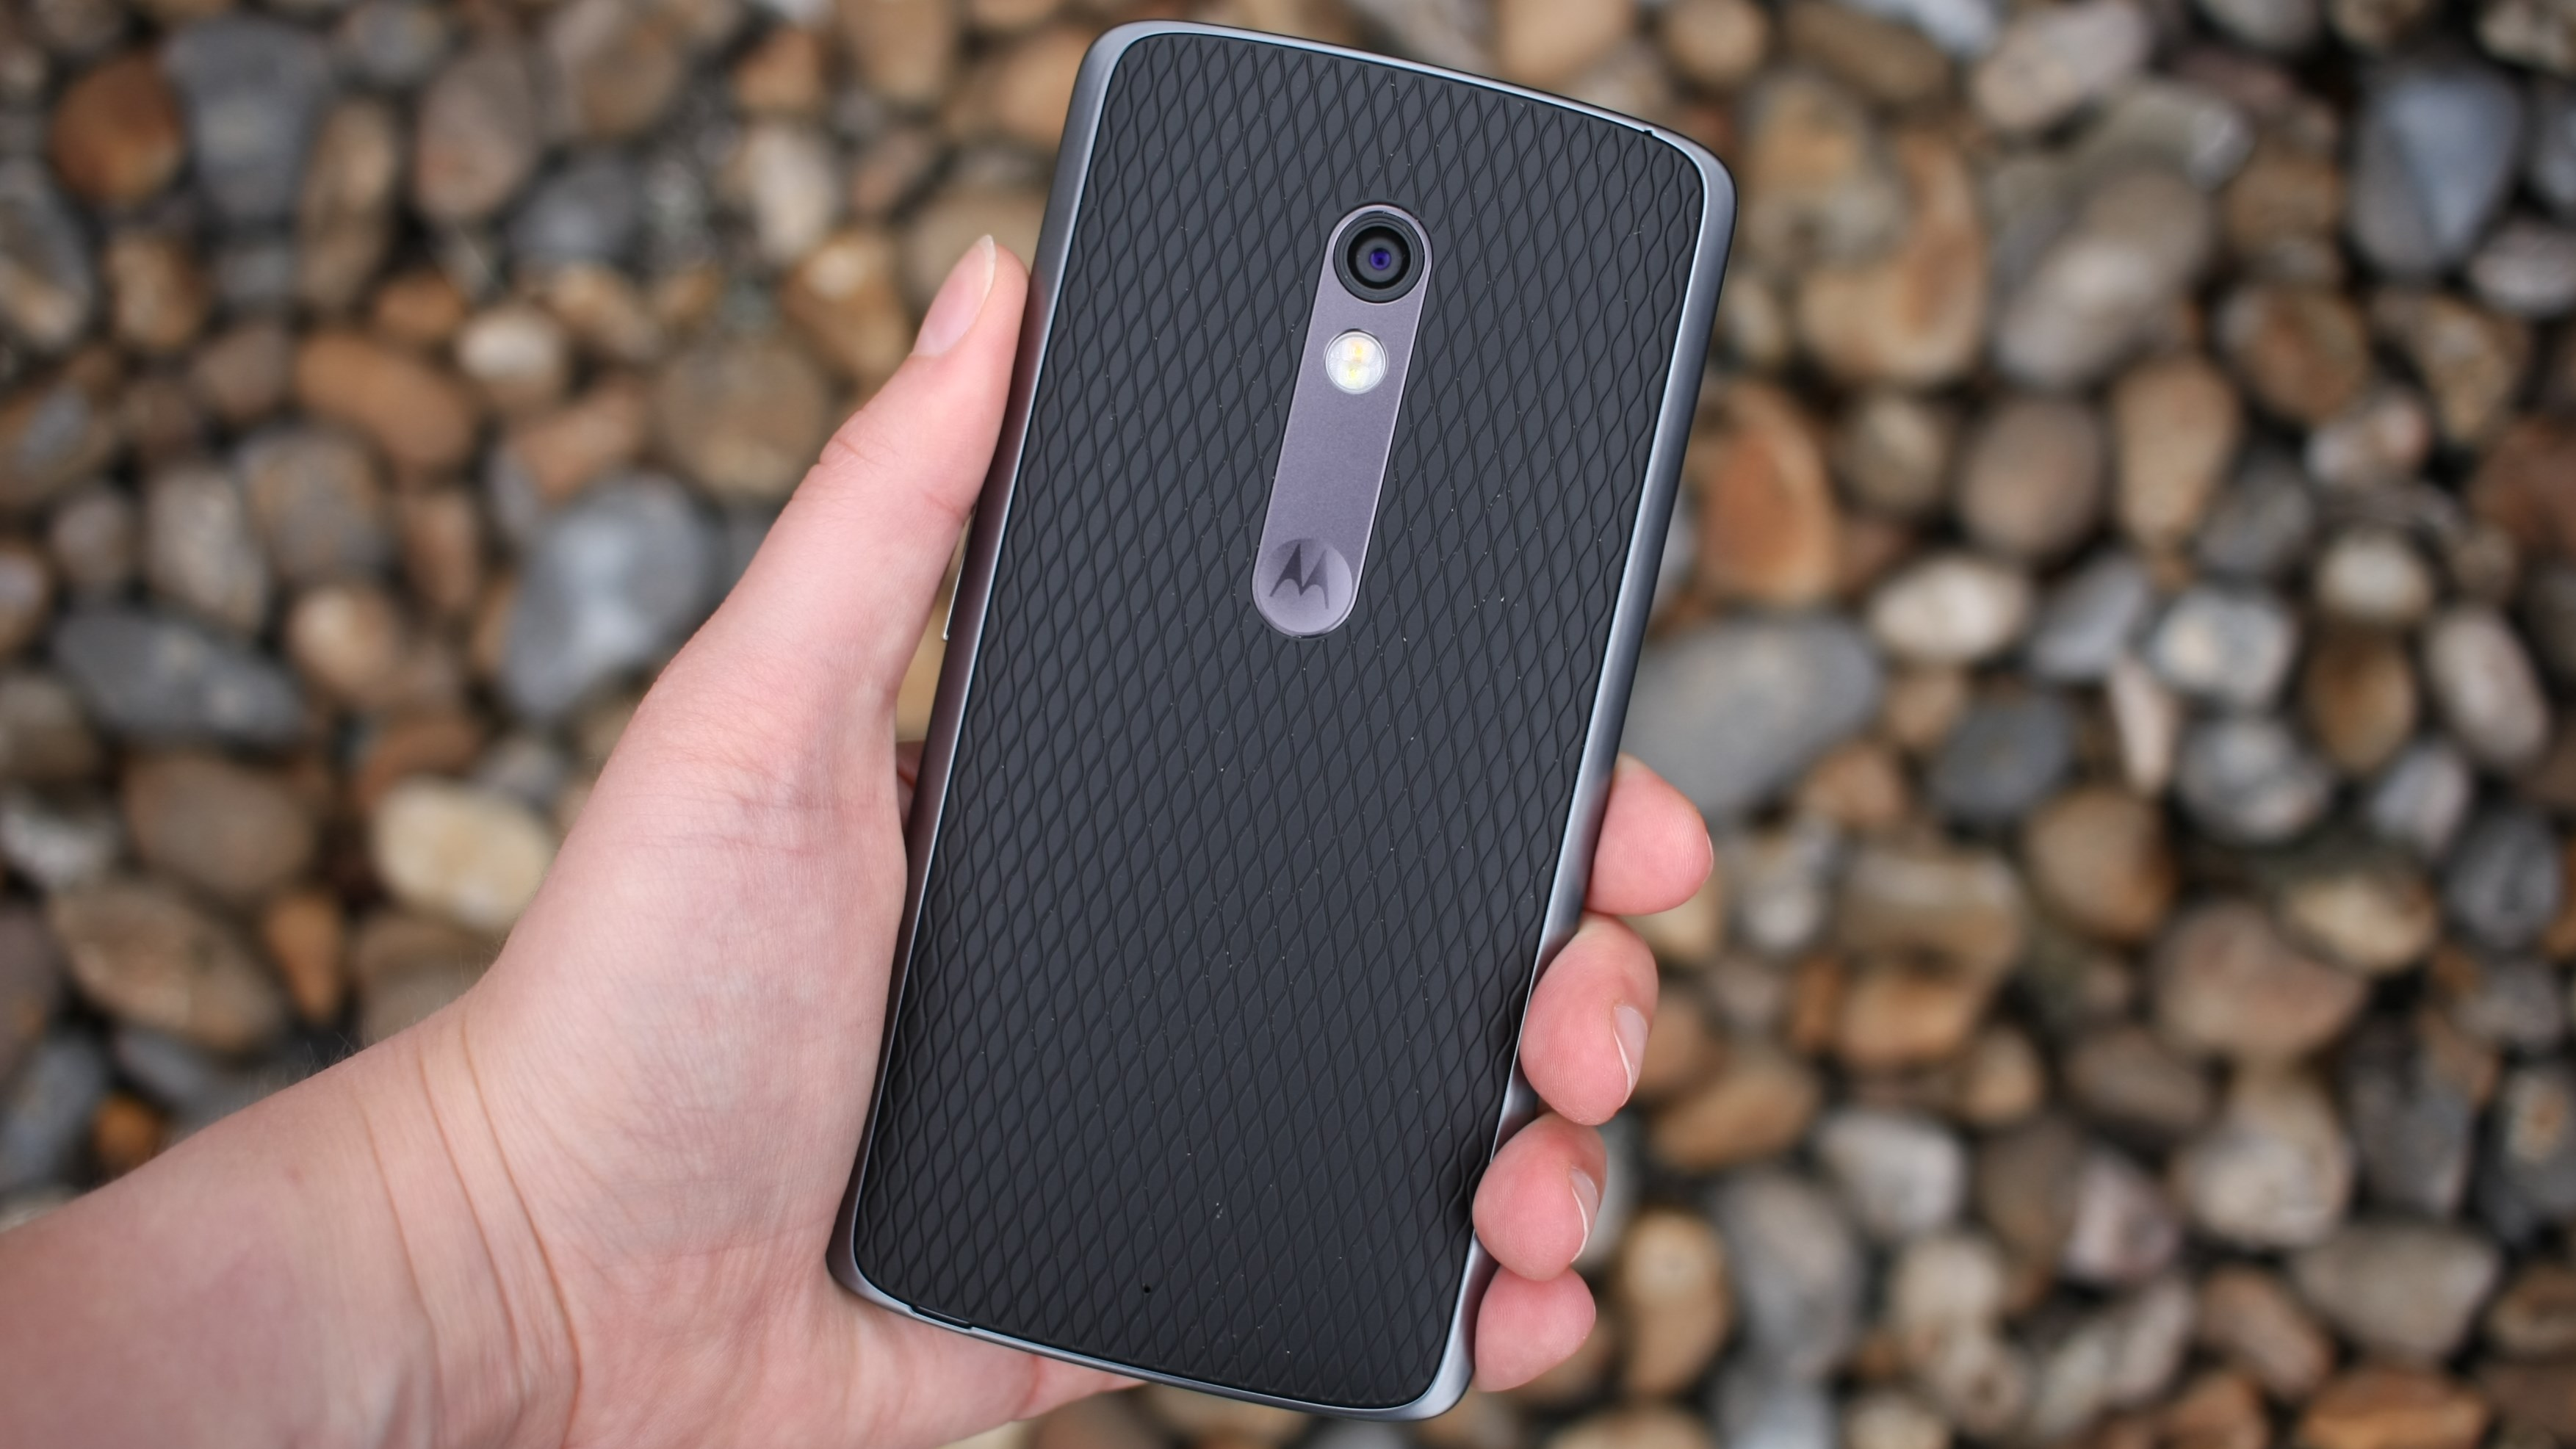 Moto z moto z play now available in india price specifications and - Moto X Play Rear